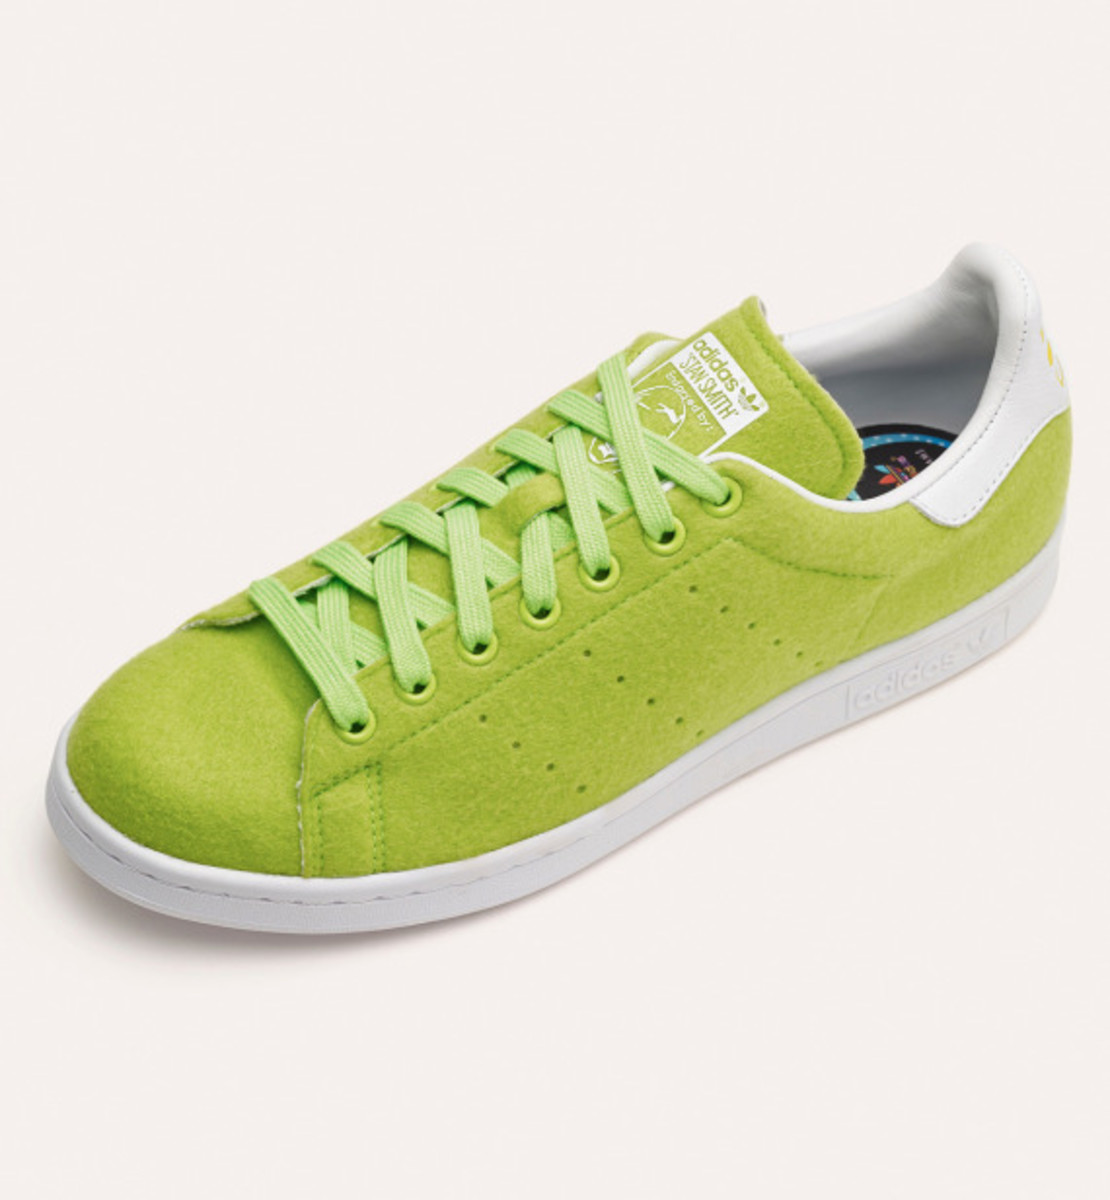 pharrell-adidas-originals-tennis-pack-collection-2-e